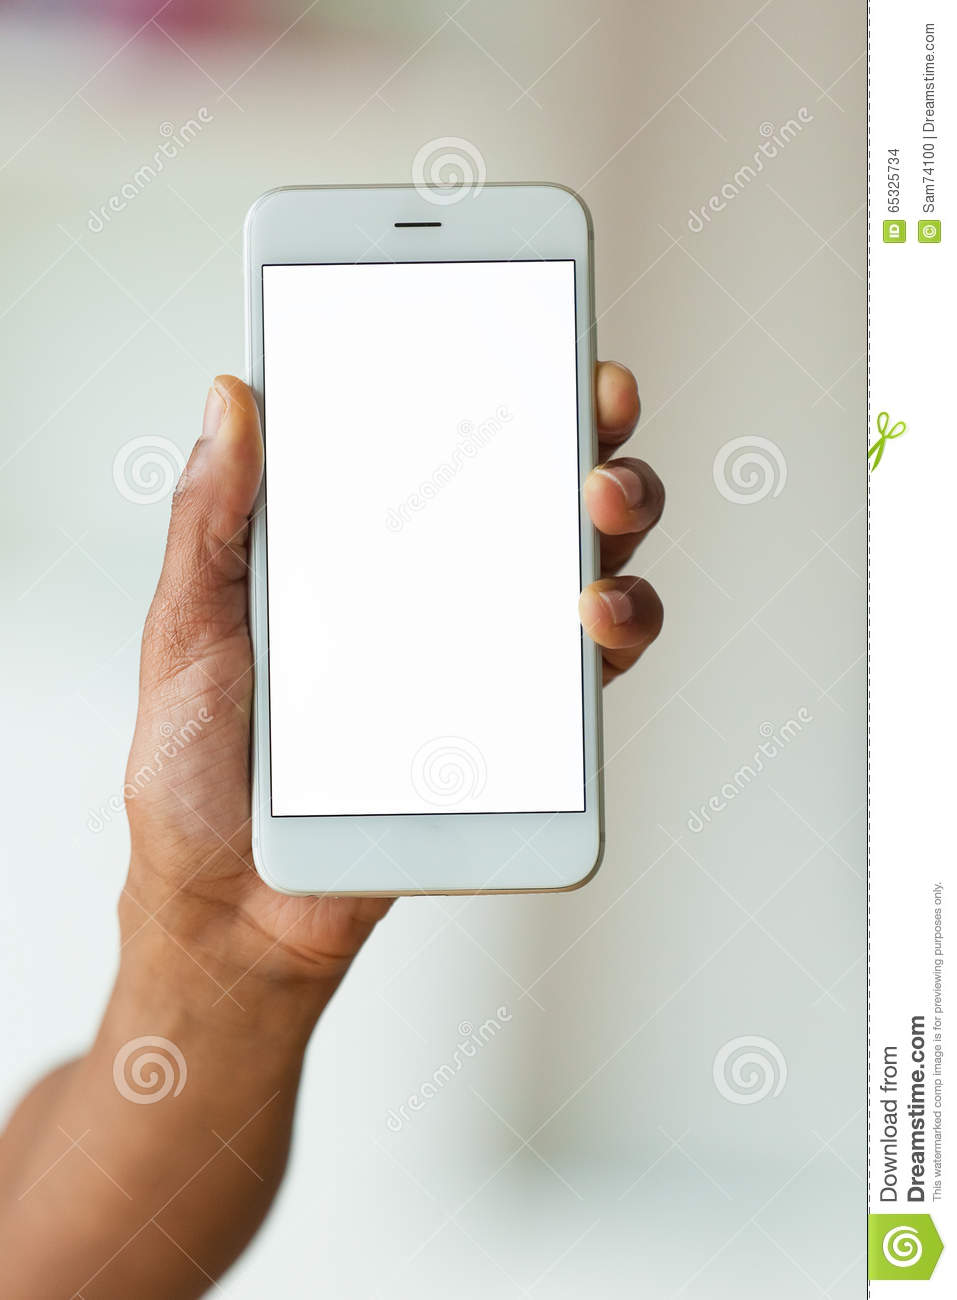 African american person holding a tactile mobile smartphone - Bl